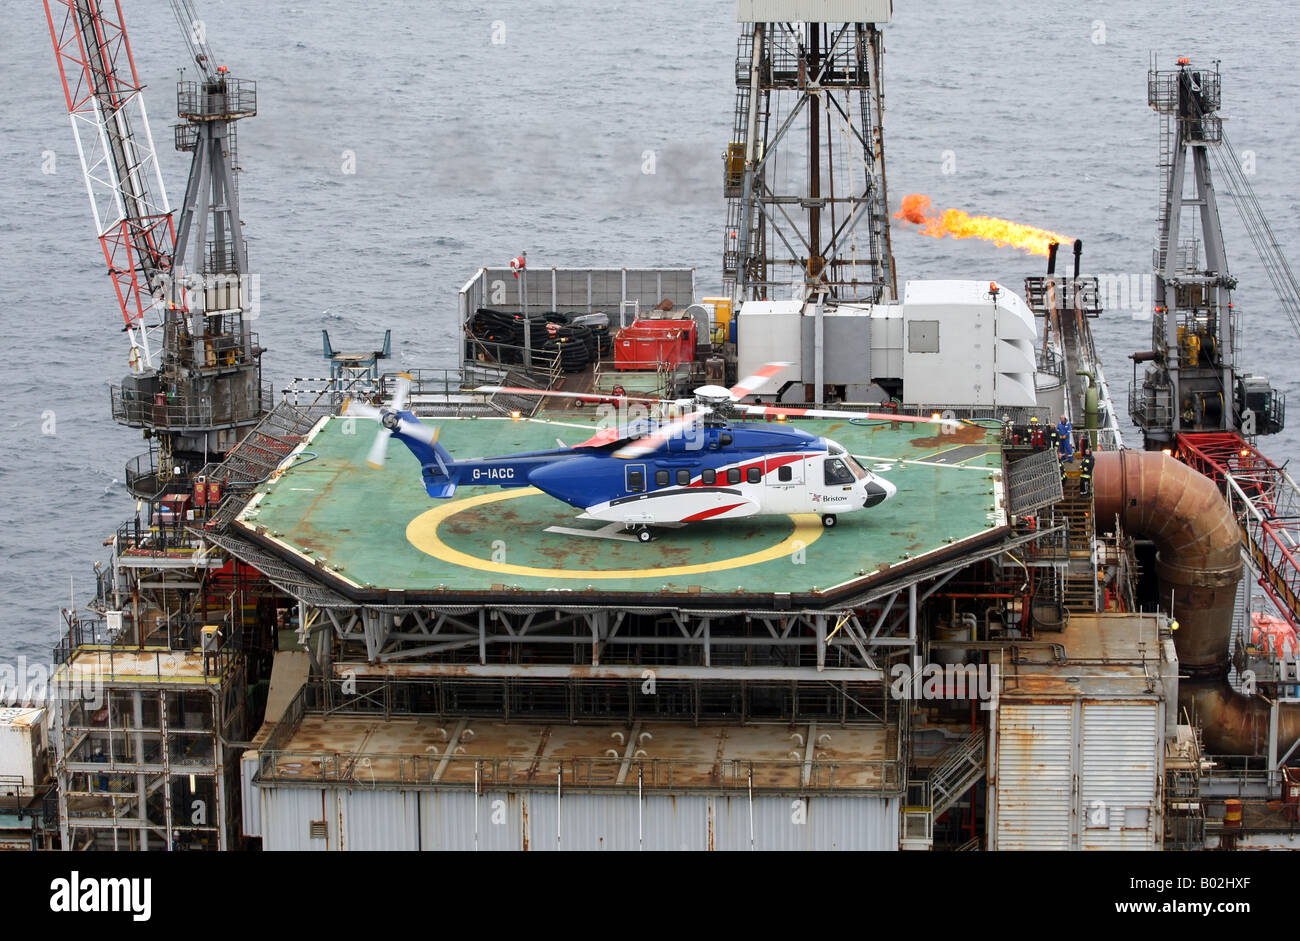 A Bristows S92 Helicopter On The Helideck Of An Oil Rig In The North Stock P